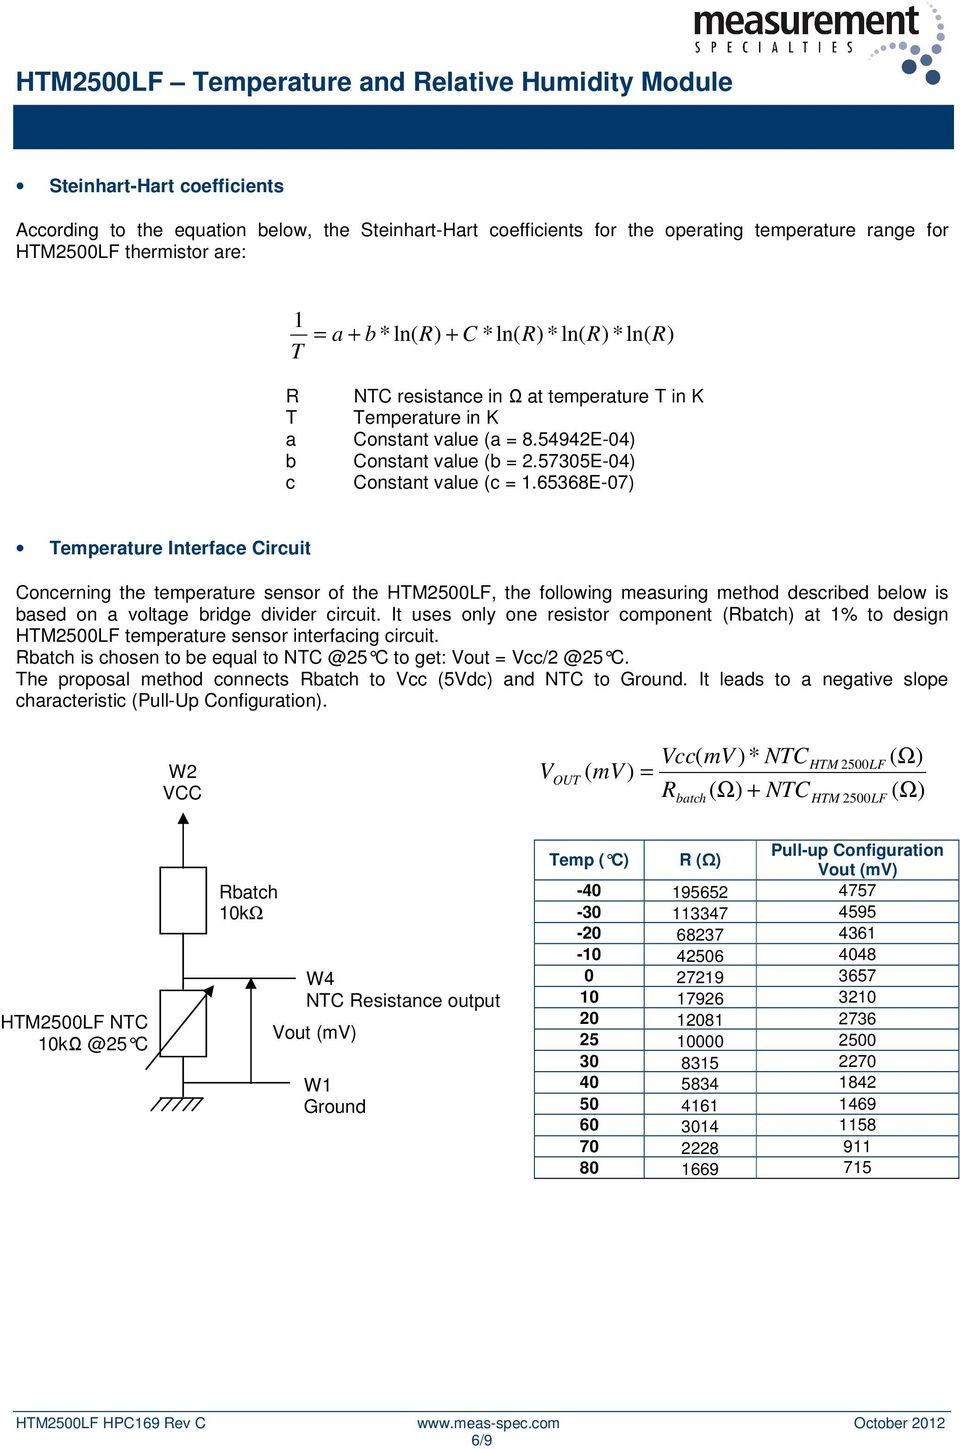 HTM2500LF Temperature and Relative Humidity Module - PDF